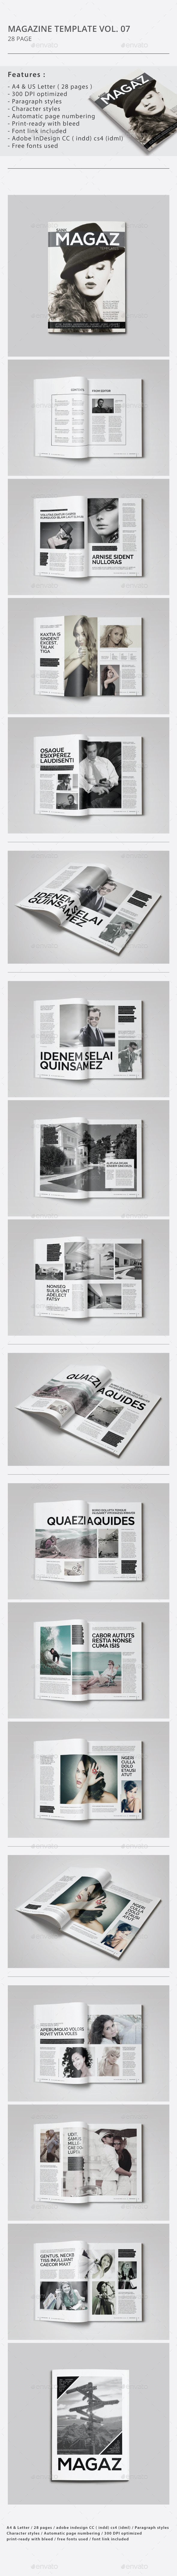 GraphicRiver Indesign Magazine Template Vol.07 9139162